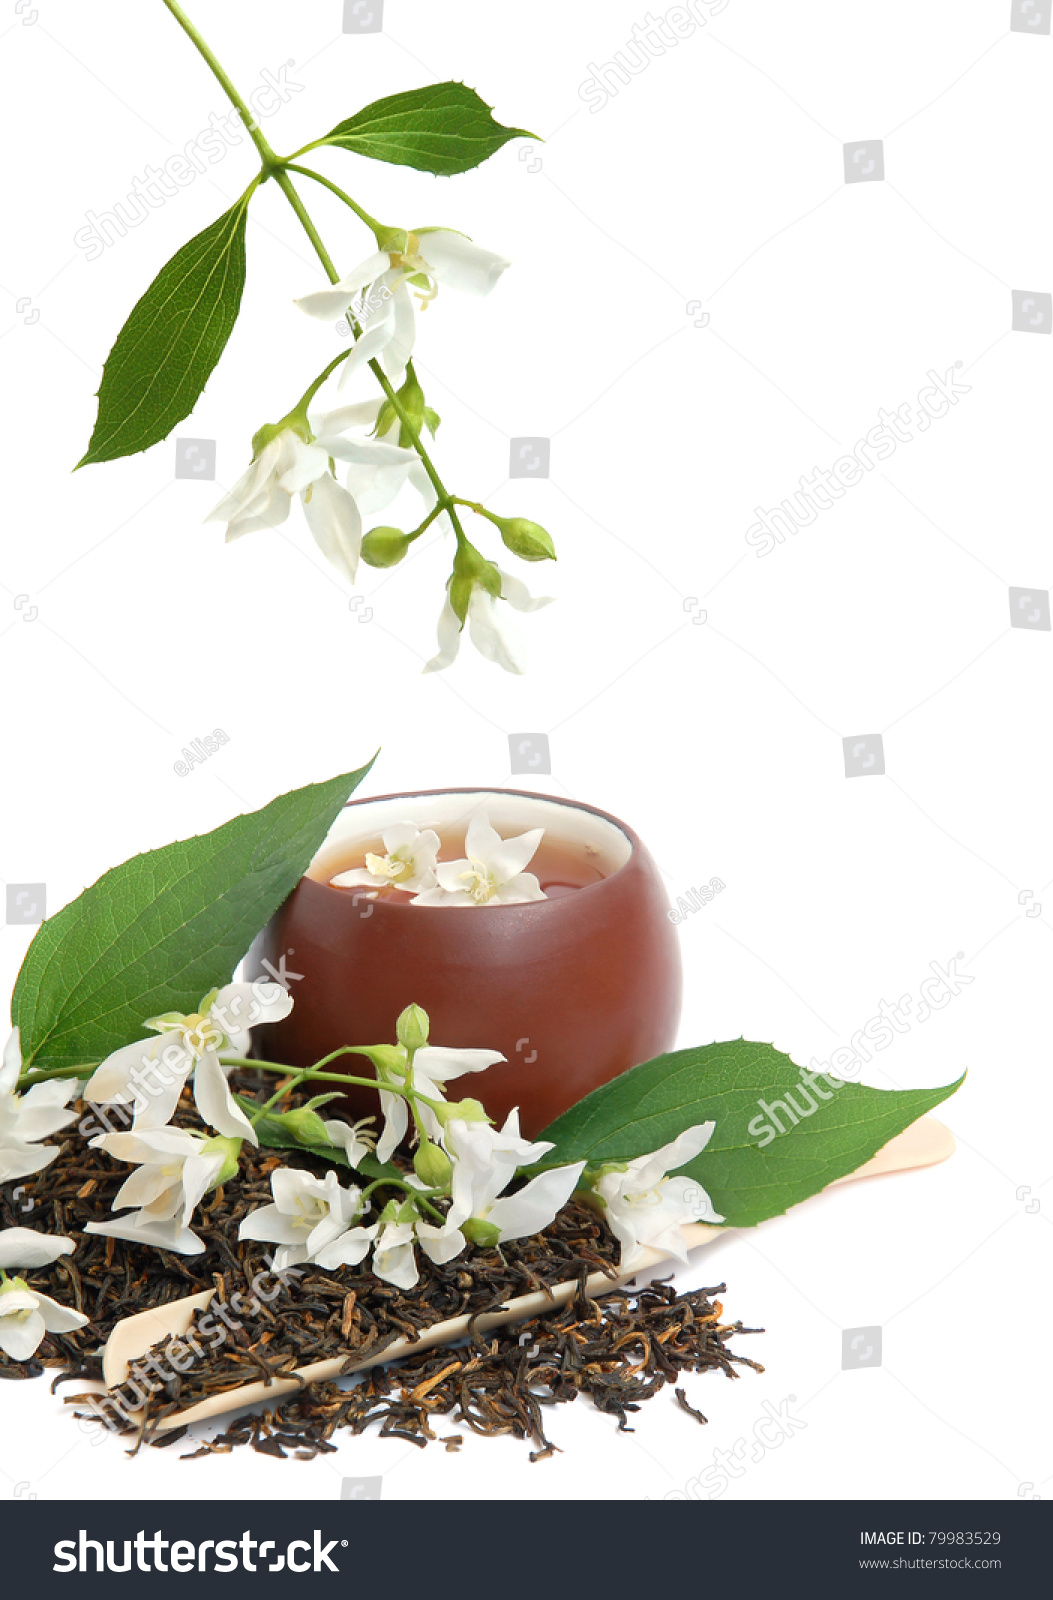 Tea leaves fresh jasmine flowers chinese stock photo edit now tea leaves with fresh jasmine flowers and chinese cup on white background izmirmasajfo